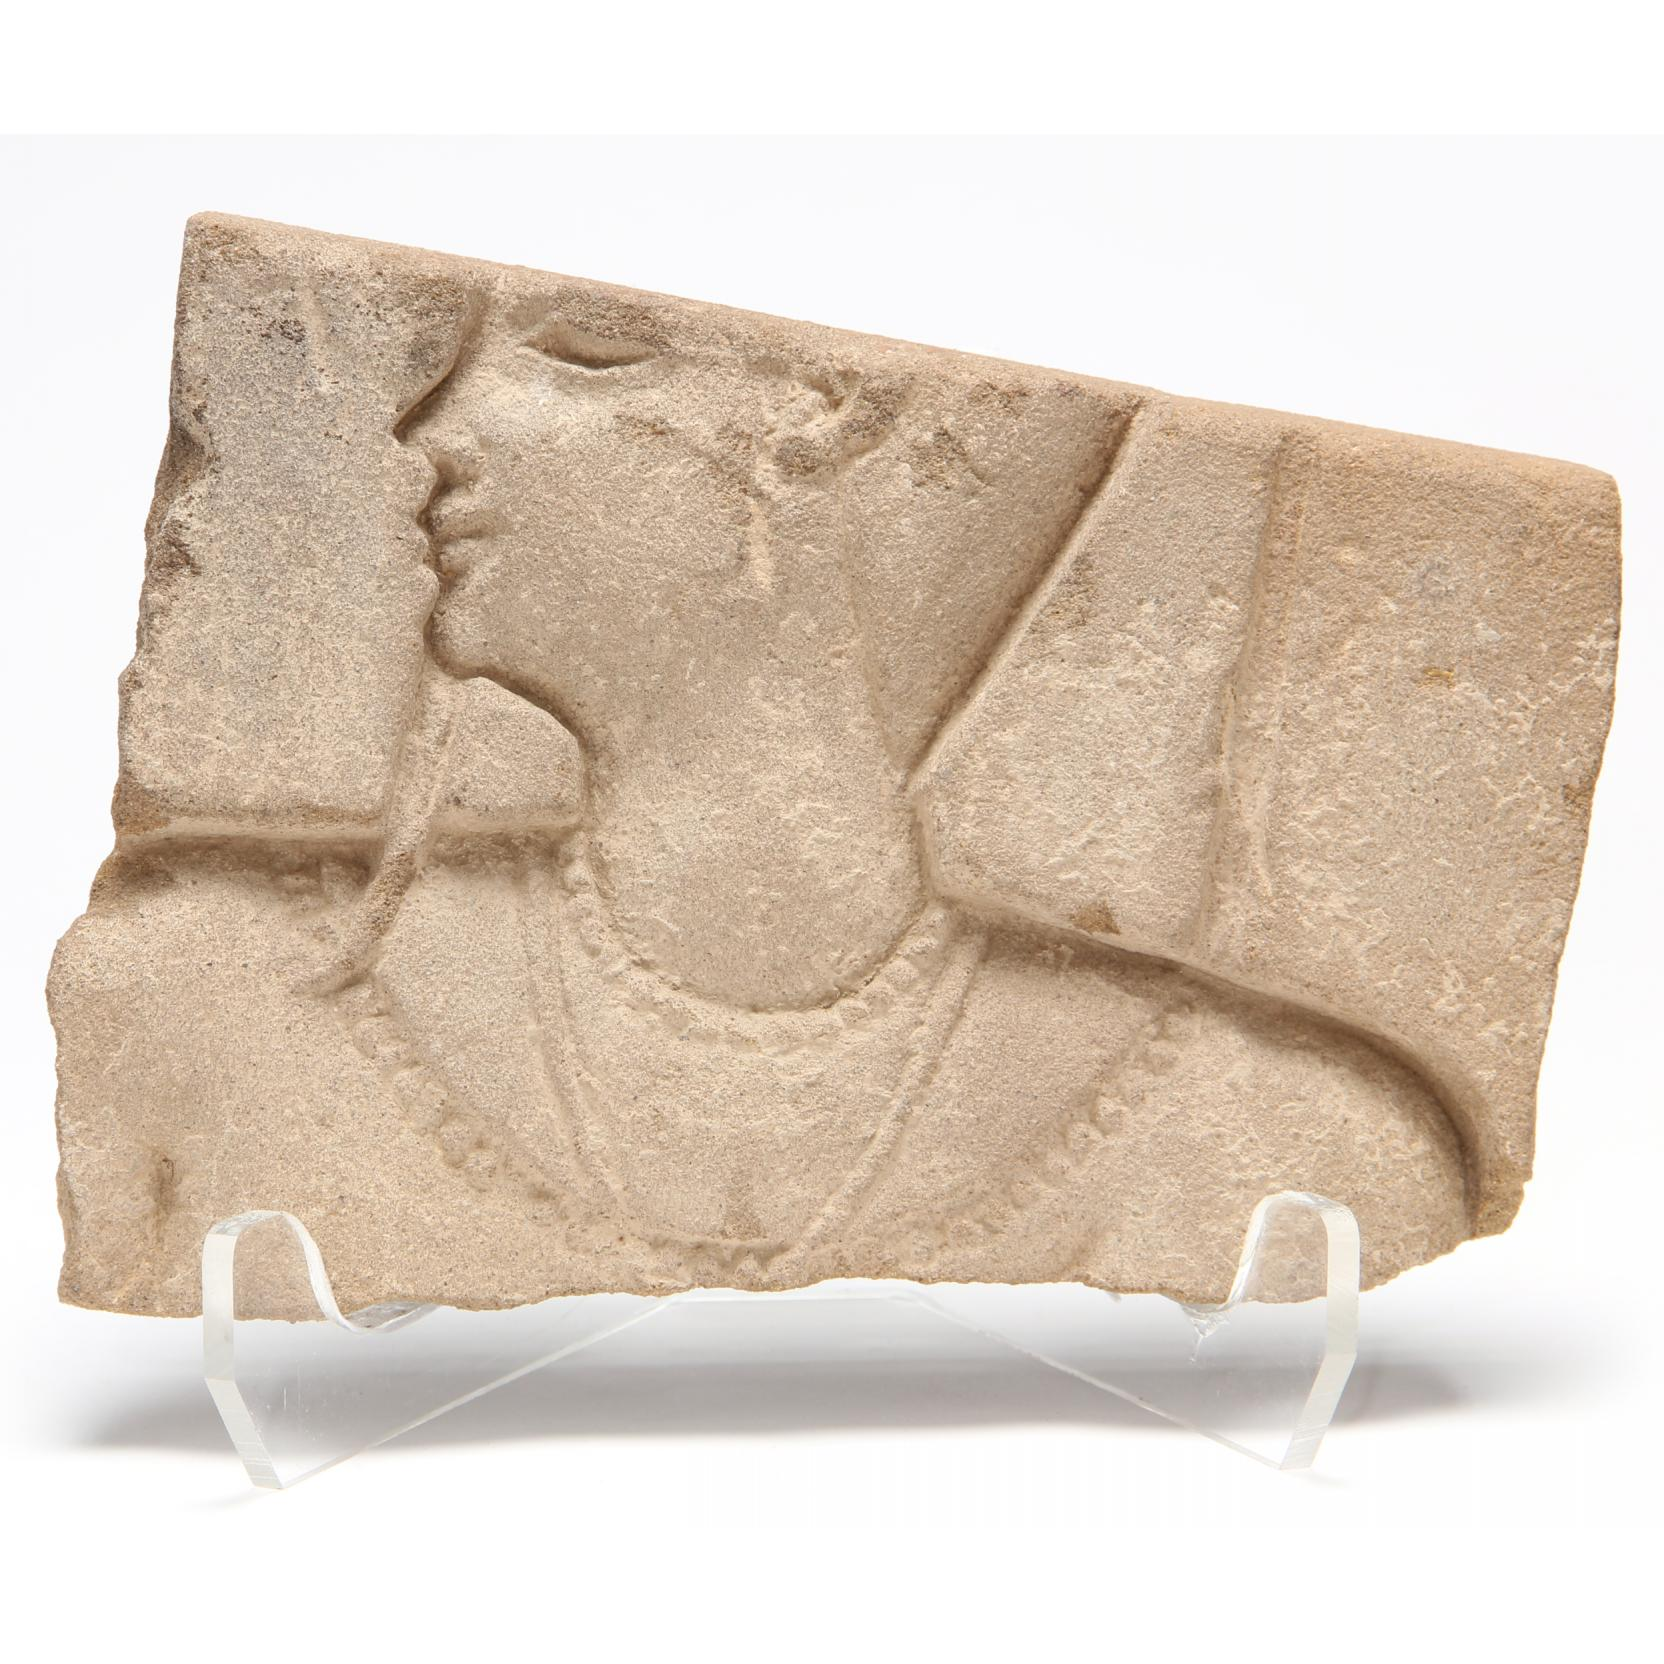 ancient-egyptian-red-sandstone-relief-fragment